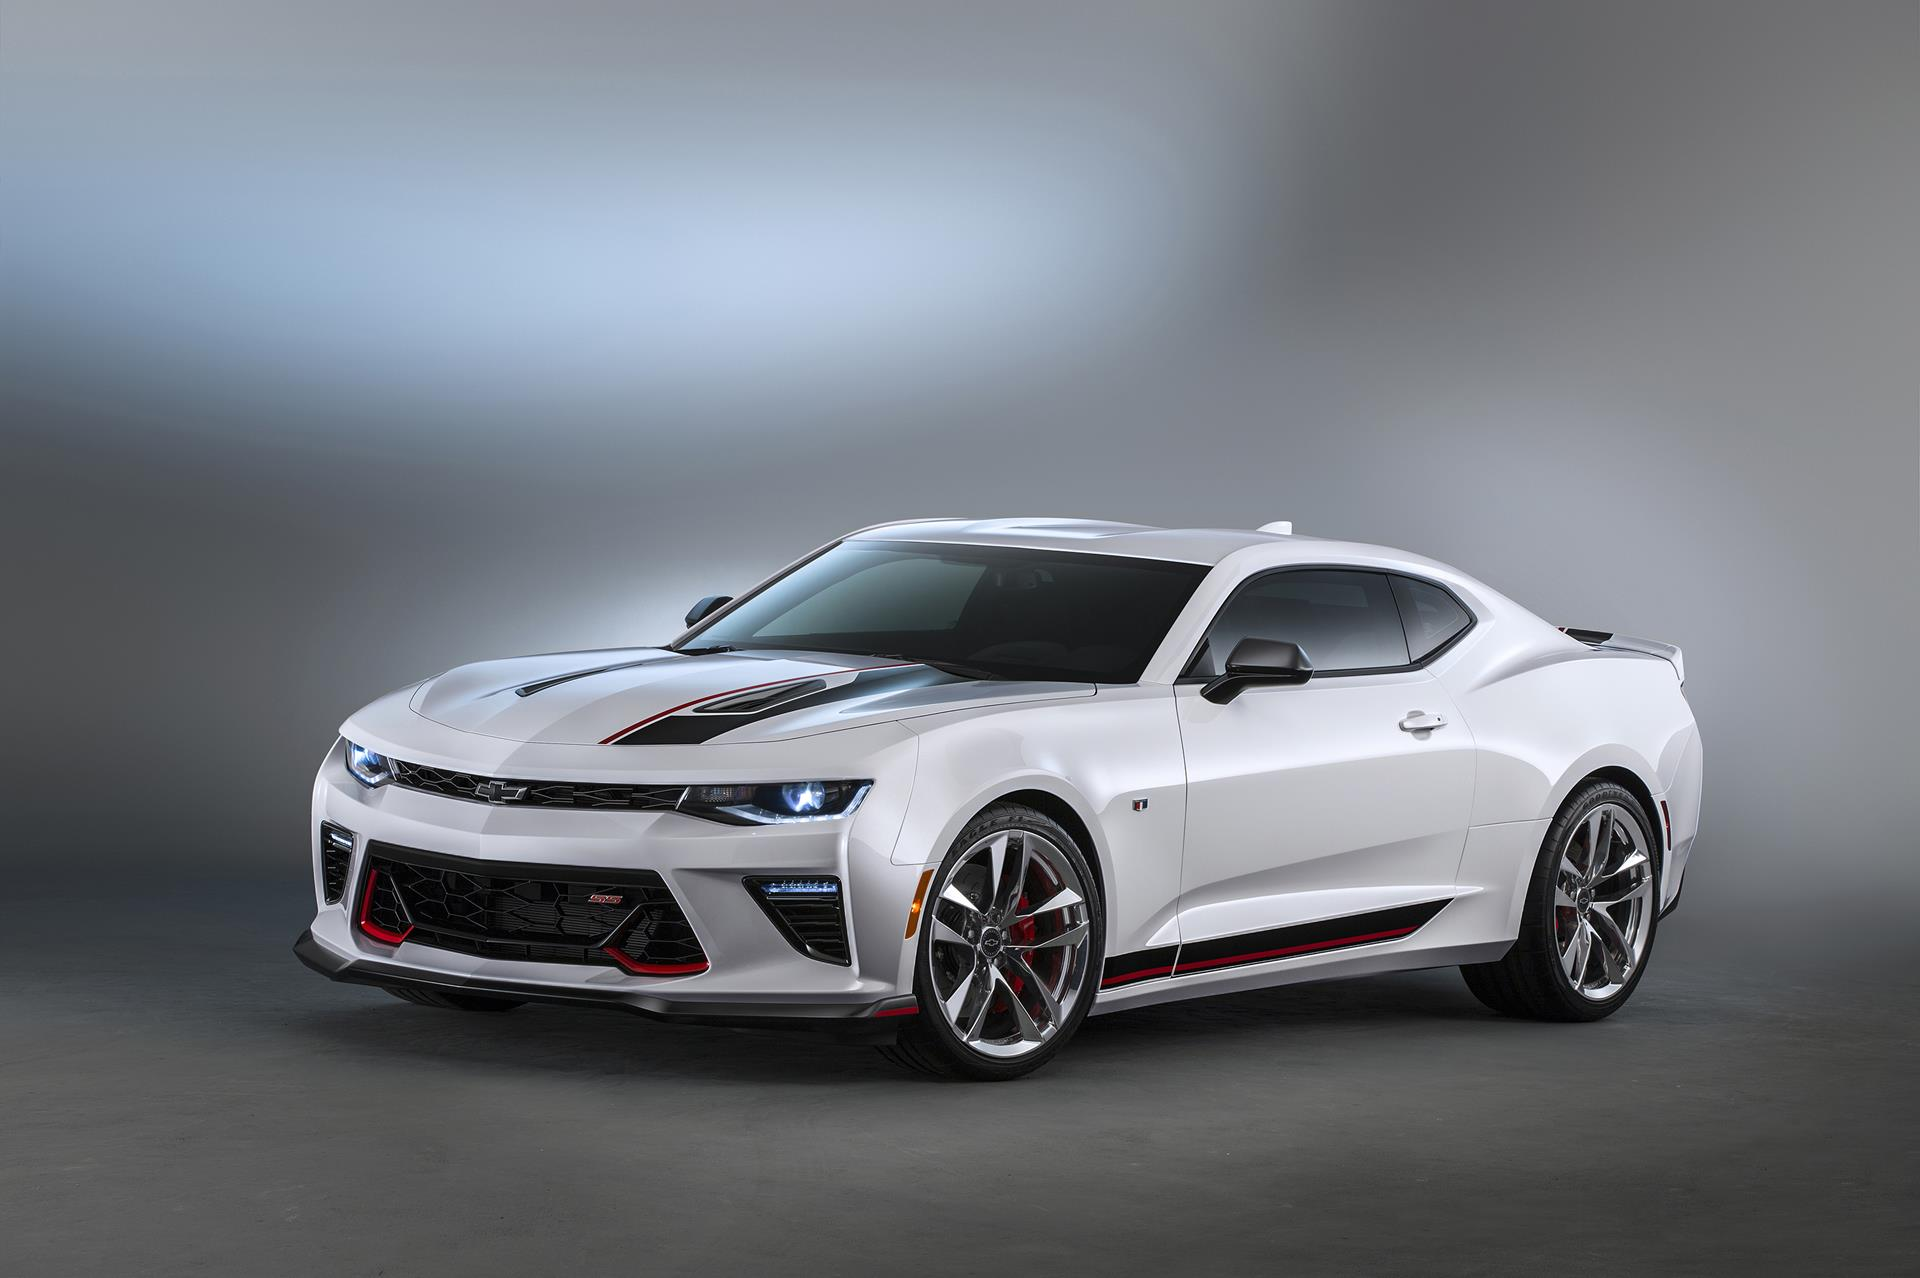 2016 chevrolet chevrolet performance concept. Cars Review. Best American Auto & Cars Review